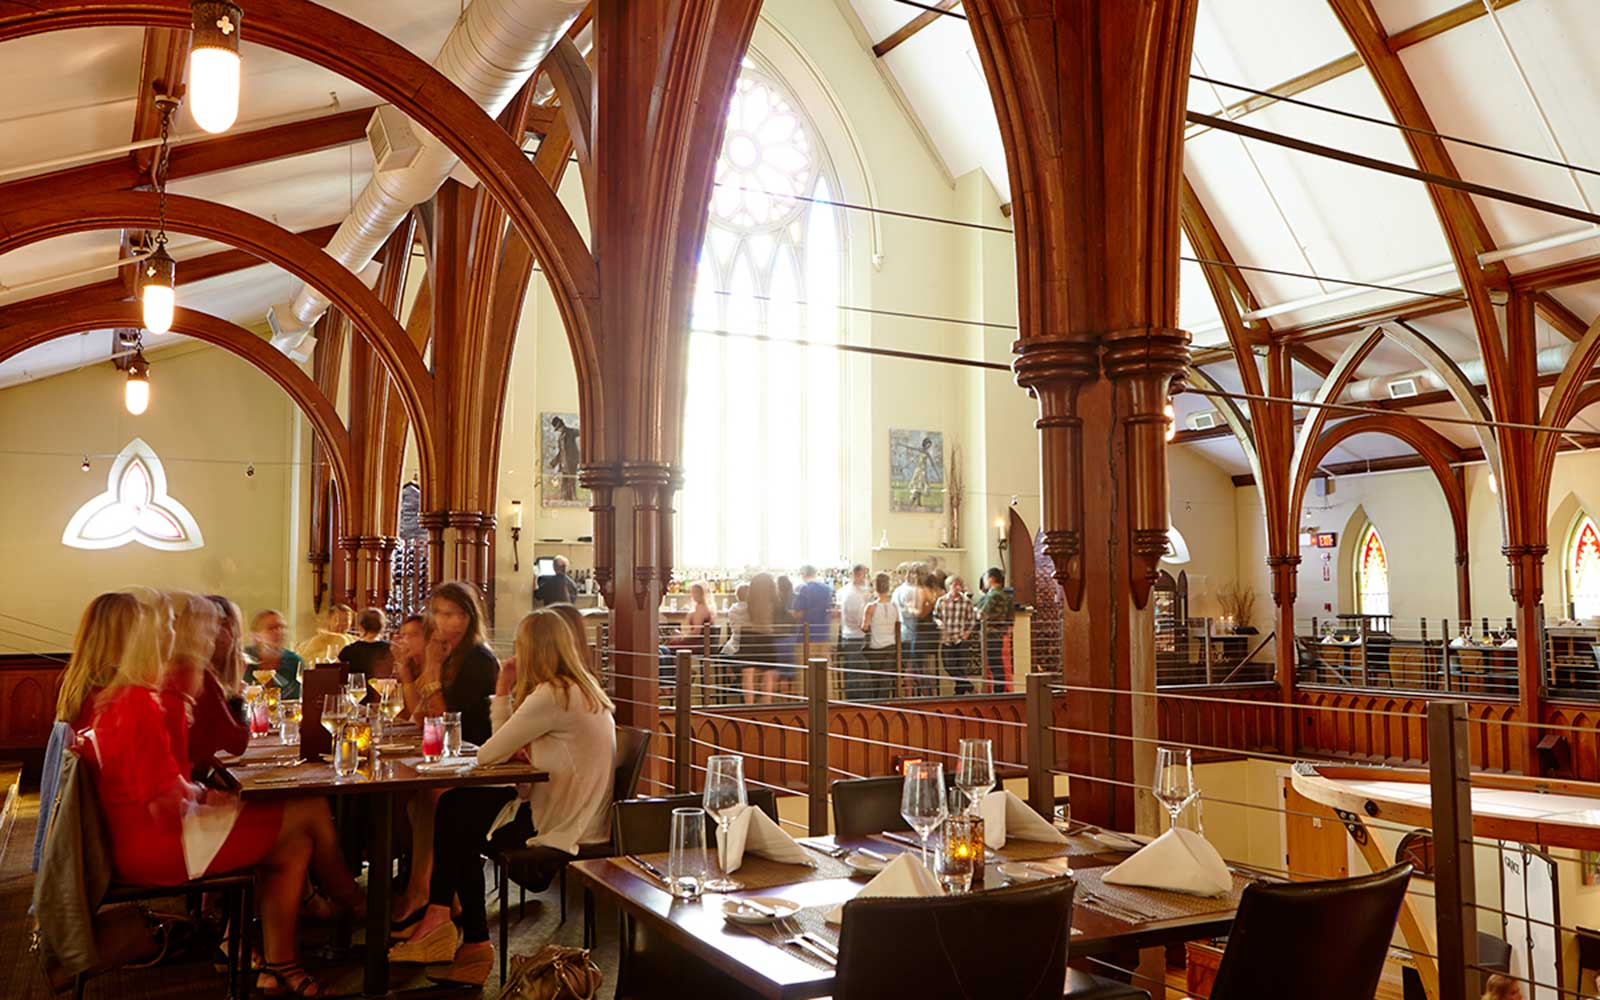 13 Grand Churches, Reincarnated: Restaurant Grace in Portland, Maine